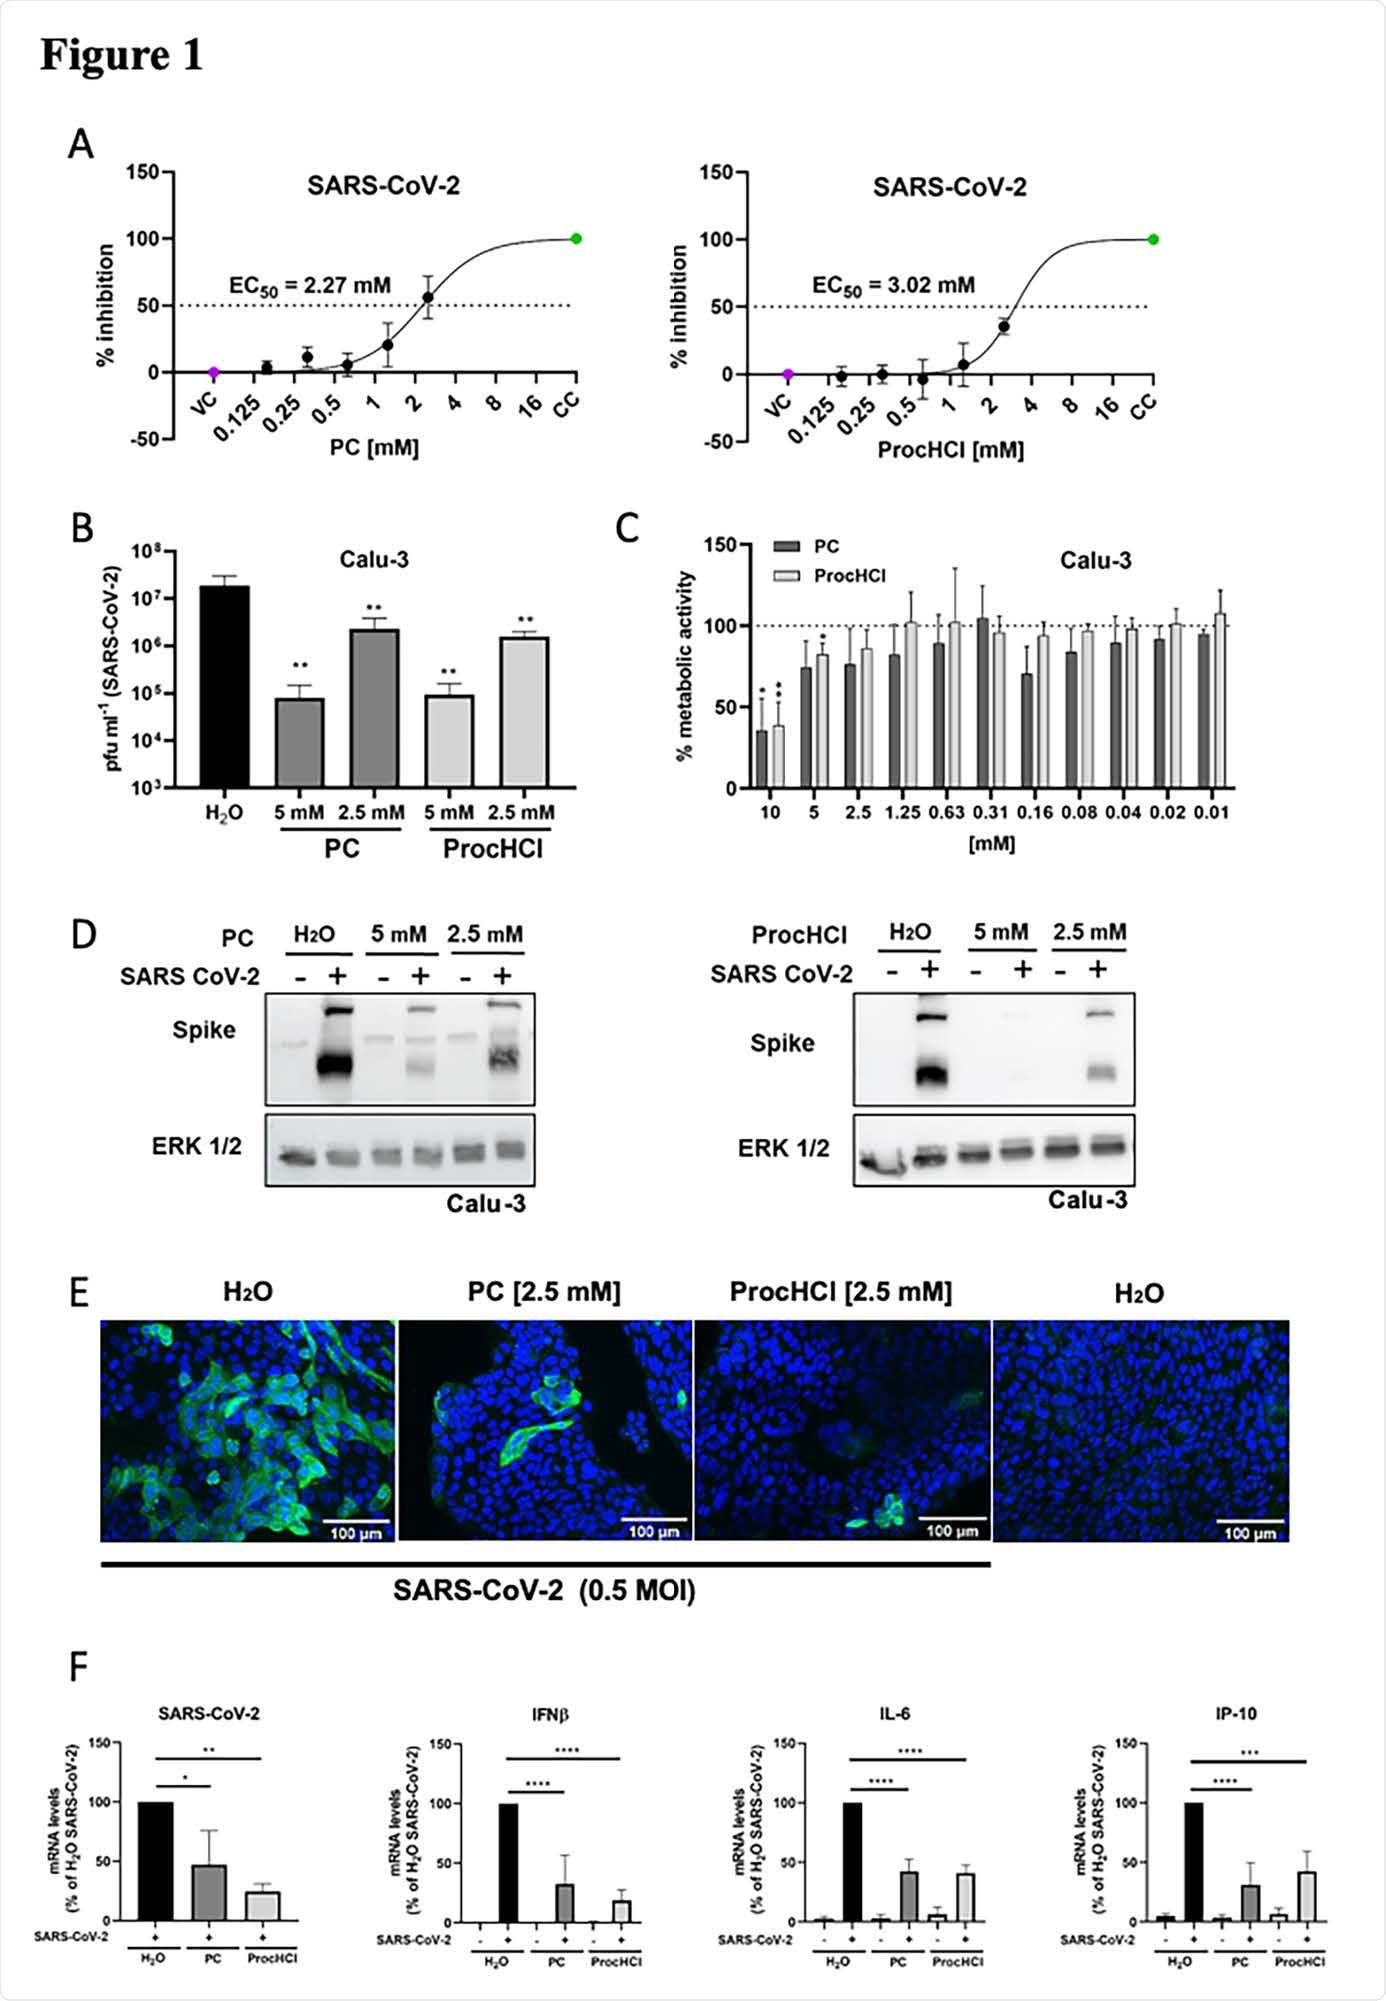 ProcCluster® and Procaine-hydrochloride inhibit SARS-CoV-124 2 infection in vitro. Vero-76 cells (A) or Calu-3 cells (B-F) were infected with SARS-CoV-2 (A-B, D-F) or left uninfected (C) in absence and presence of the indicated substances (A-F). (A) The relative amount of surviving cells was measured to determine the effective concentrations 50 % (EC50) of PC and ProcHCl. (B) Virus titres were examined by standard plaque assays. (C) Proliferation of Calu-3 cells was analysed by MTT assay. (D) Protein synthesis of SARS-CoV-2 spike protein was visualized by western-blotting and equal protein load was verified by detection of the housekeeping protein ERK 1/2. (E) Immunofluorescence microscopy shows SARS-CoV-2 spike protein expression (green) and the nuclei were stained with Hoechst-33342 (blue). (F) The mRNA synthesis of SARS-CoV-2 (N1), cellular IFN-b, IL-6 and IP-10 were quantified by qRT-PCR. Data represent the mean + SD of three (A, B, F) or four (C) independent experiments, including two technical samples (*p < 0.05; **p < 0.01; *** p < 0.001; **** p < 0.0001).